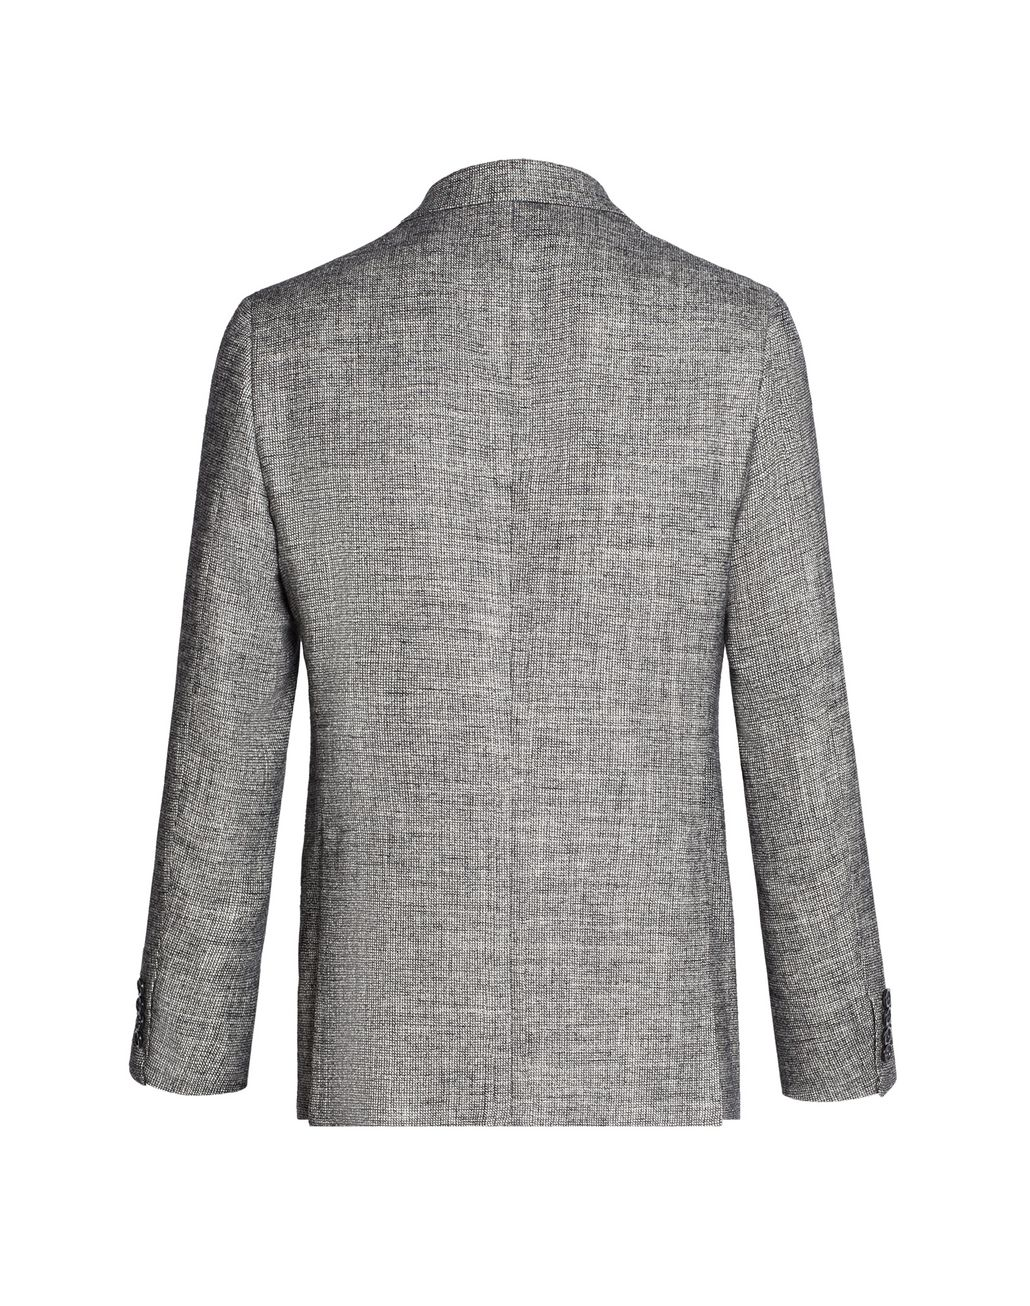 BRIONI Gray and White Ravello Jacket Jackets U r